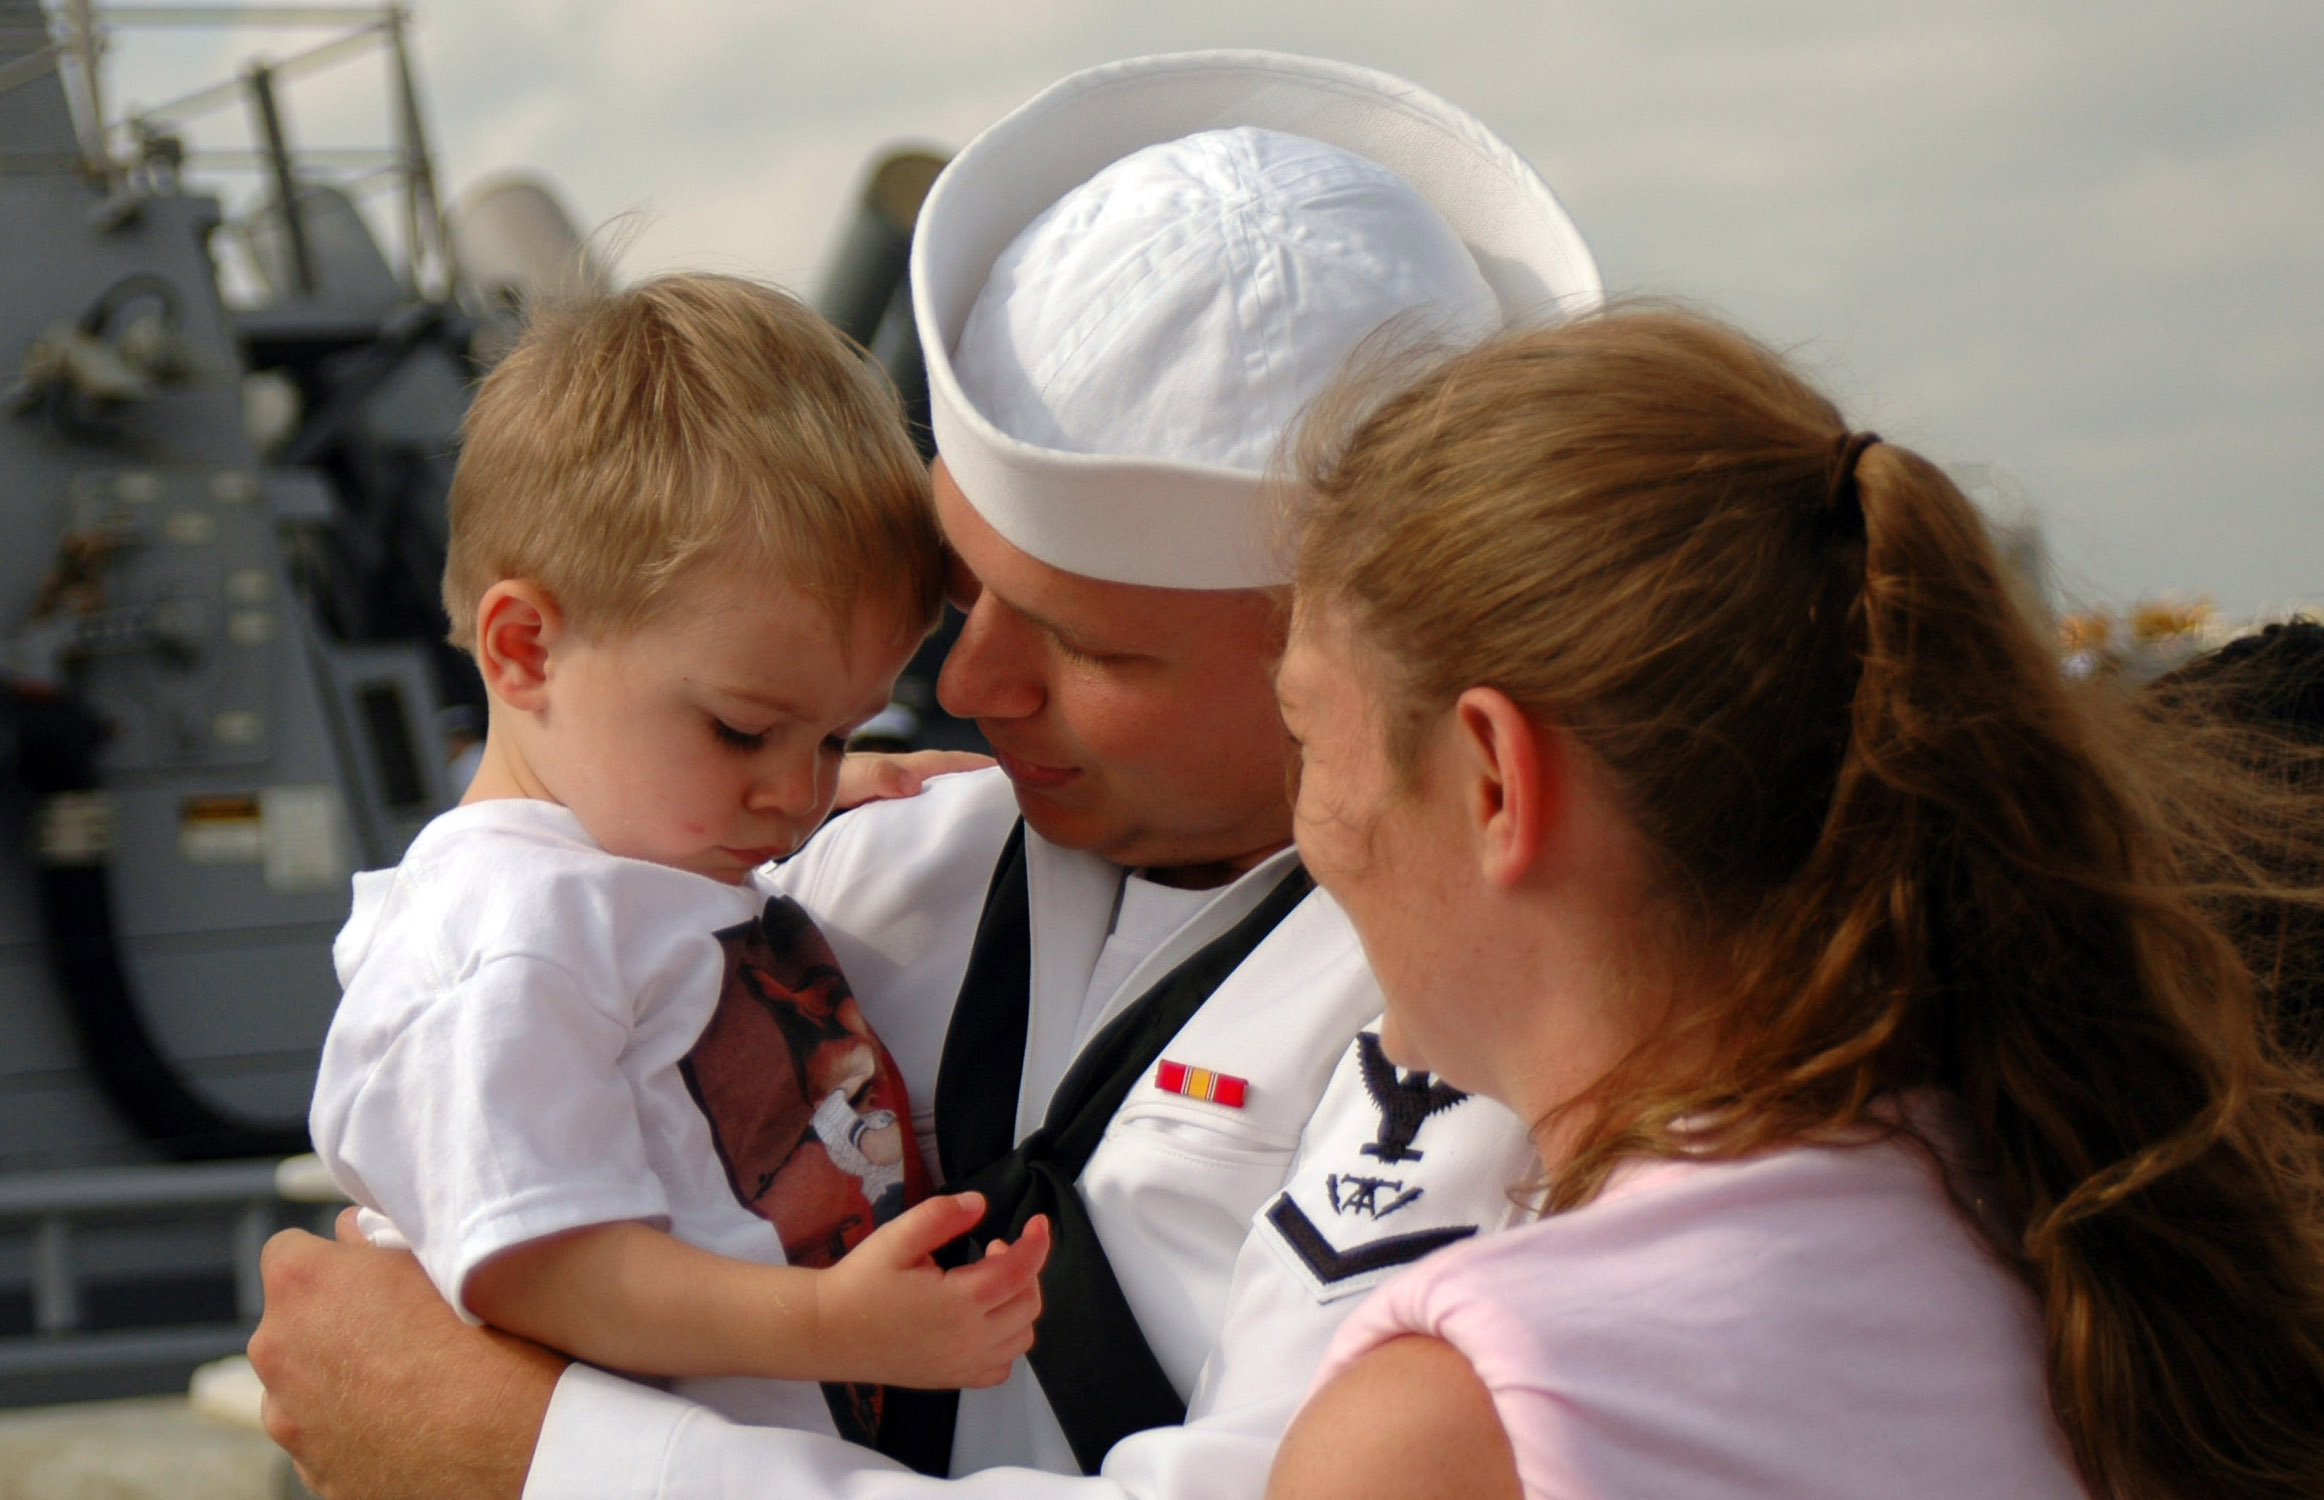 Loans For Military Family Life - Pioneer Military Loans®